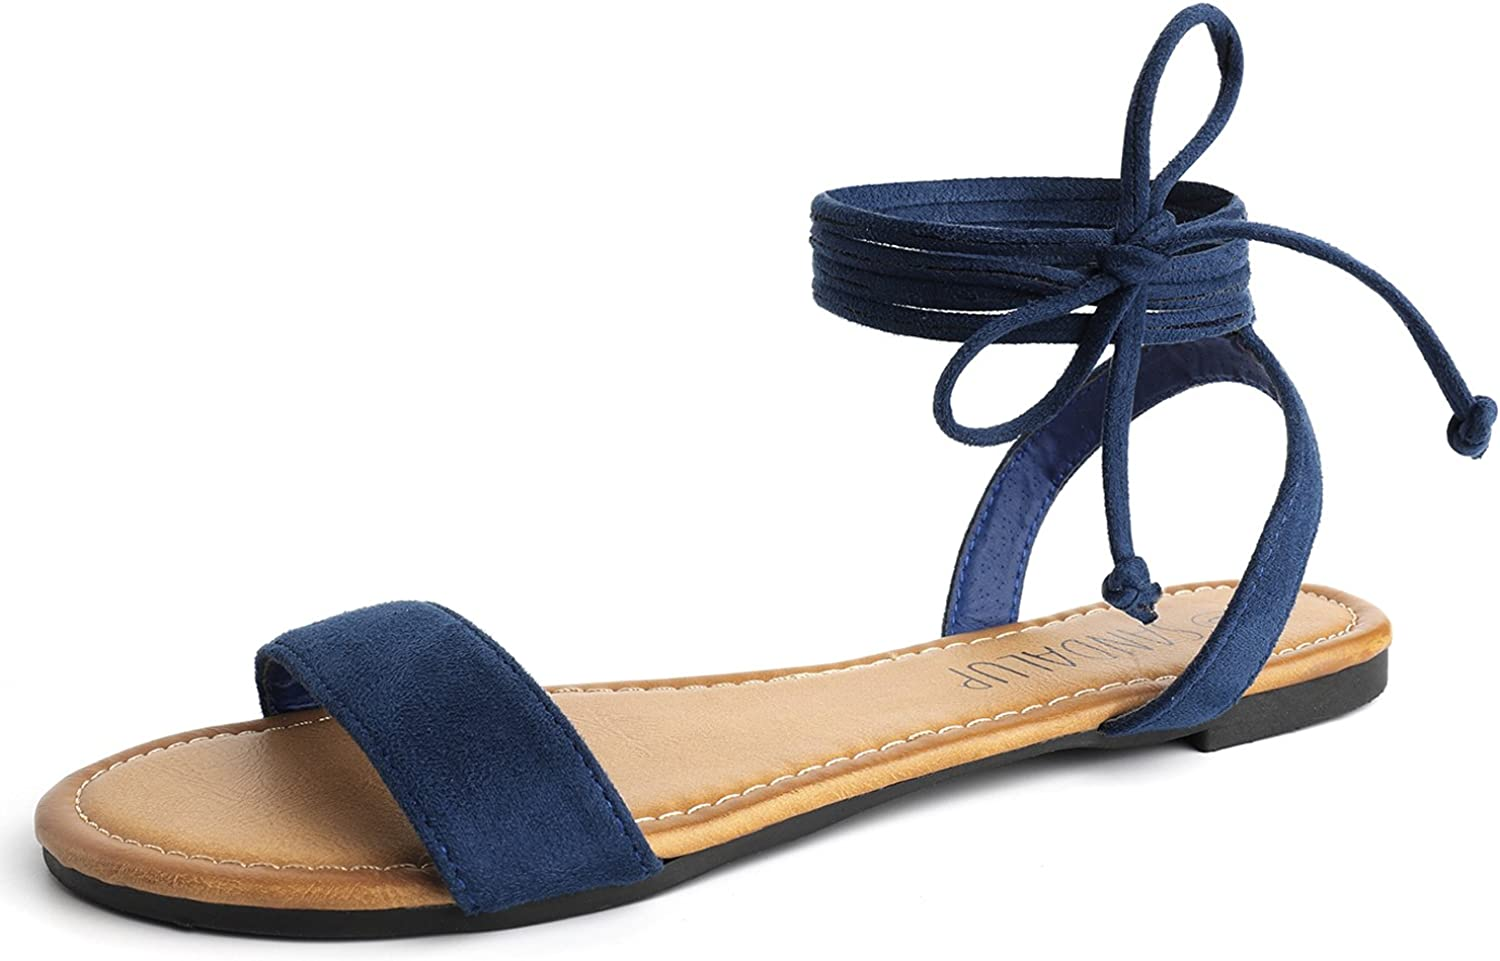 SANDALUP Tie Many popular brands Up Ankle Strap Sales flat sandals women for